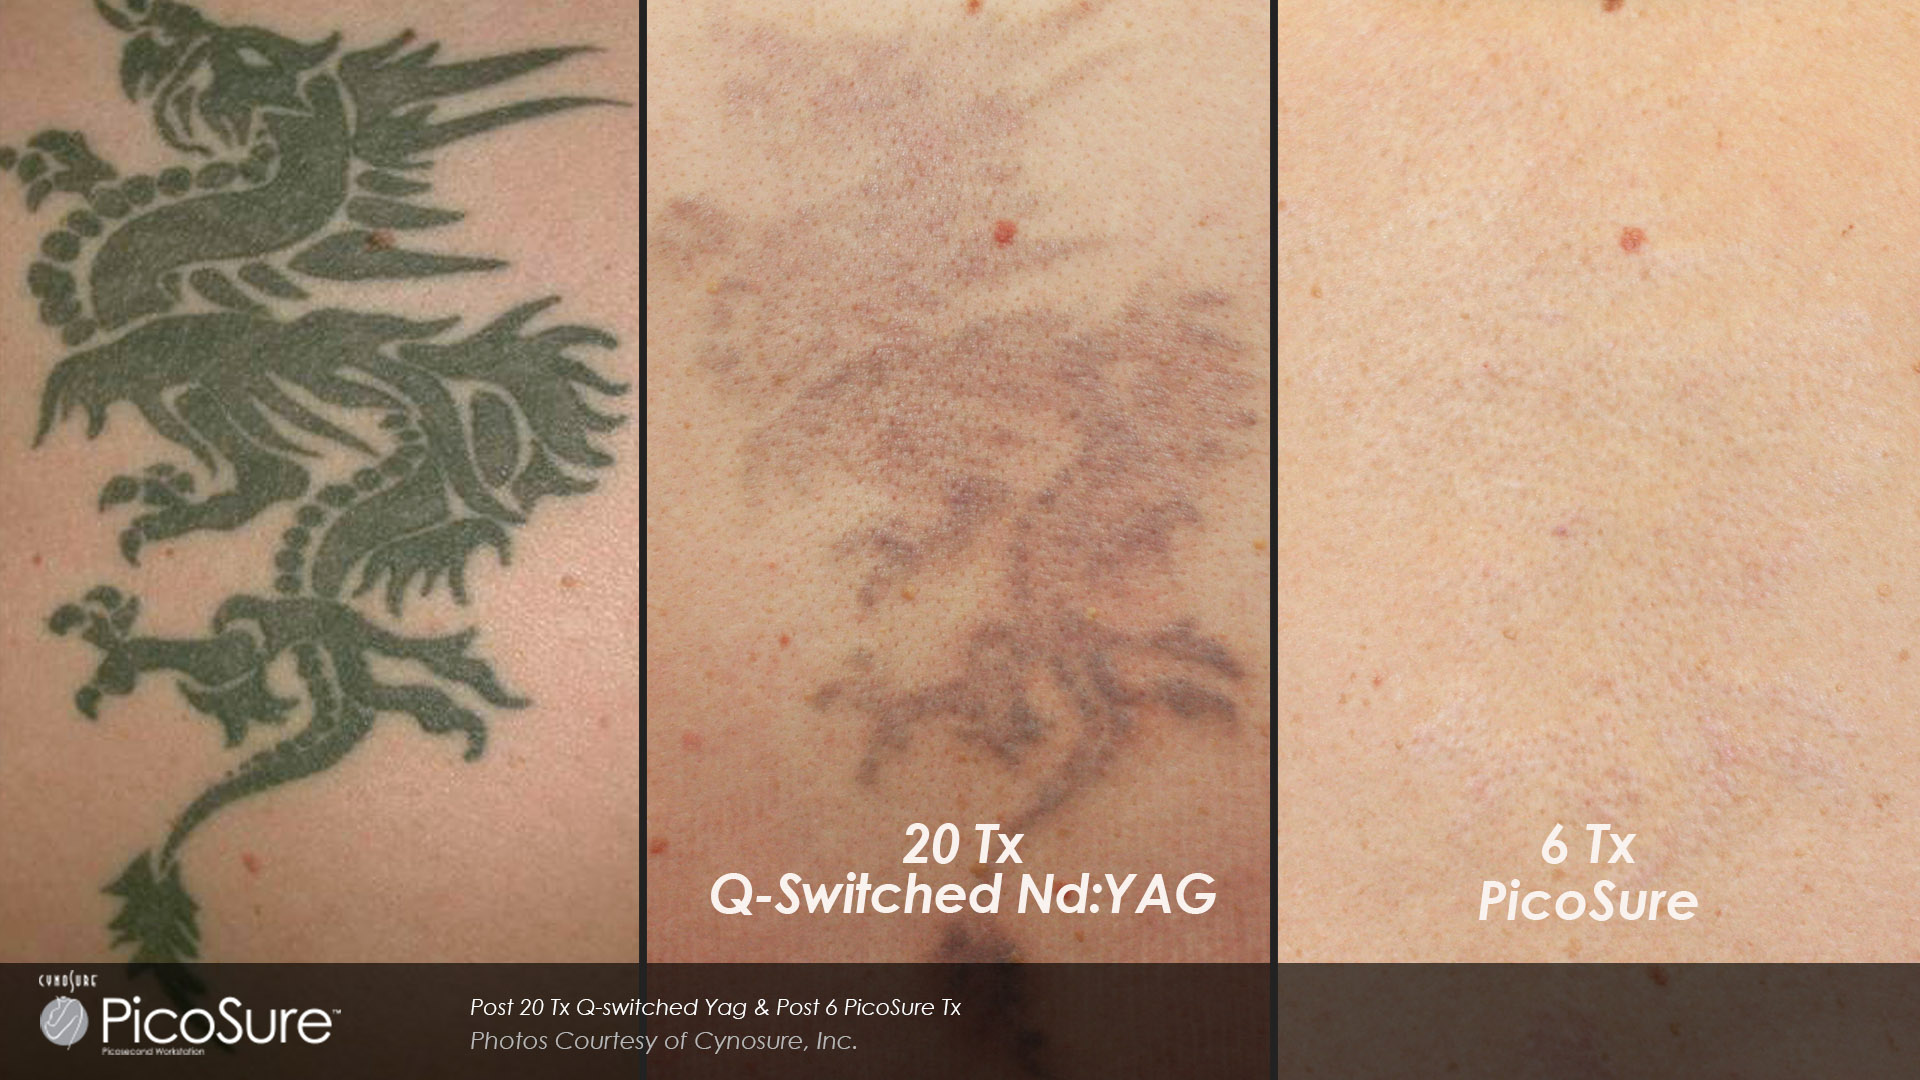 Laser Tattoo Removal Before And After Photos Cosmetic Dermatology